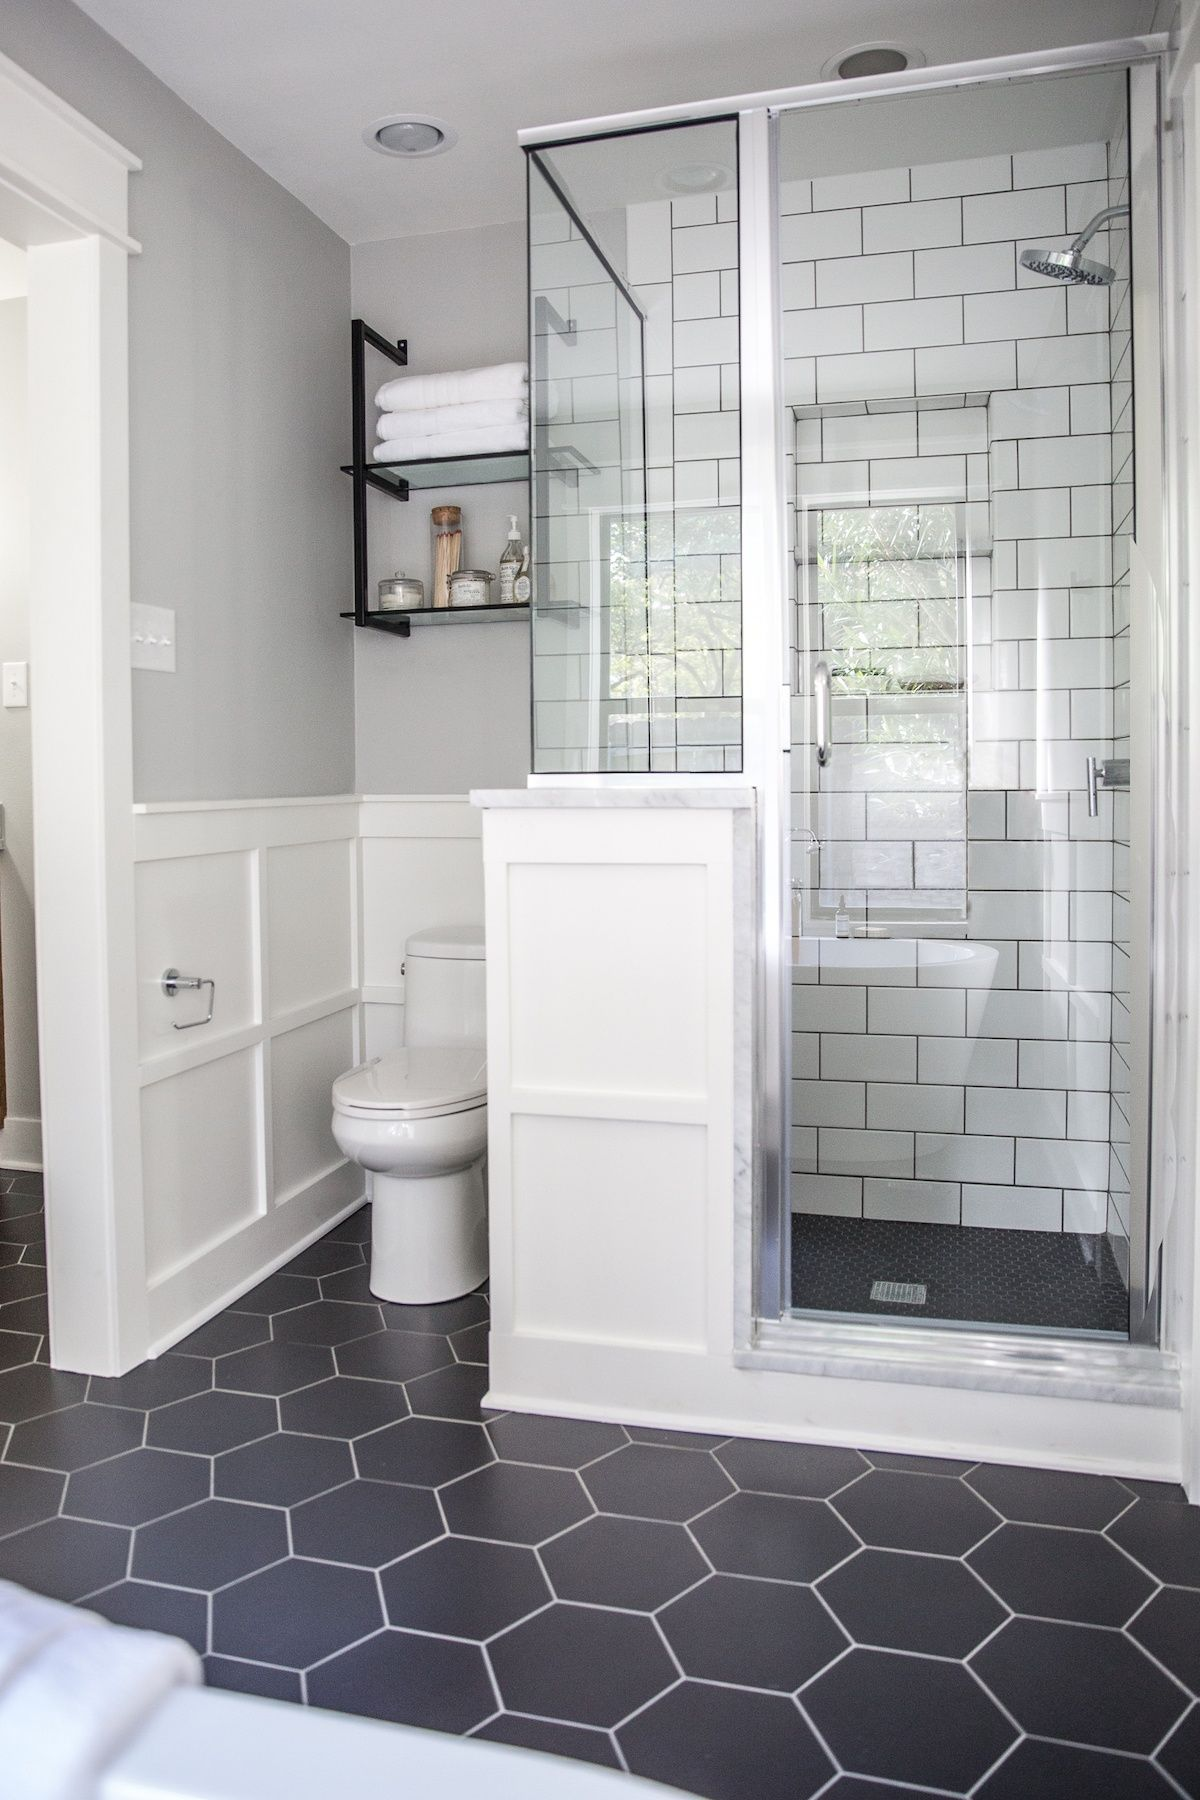 A Master Bathroom Renovation in 2018 | Home// | Pinterest | White ...